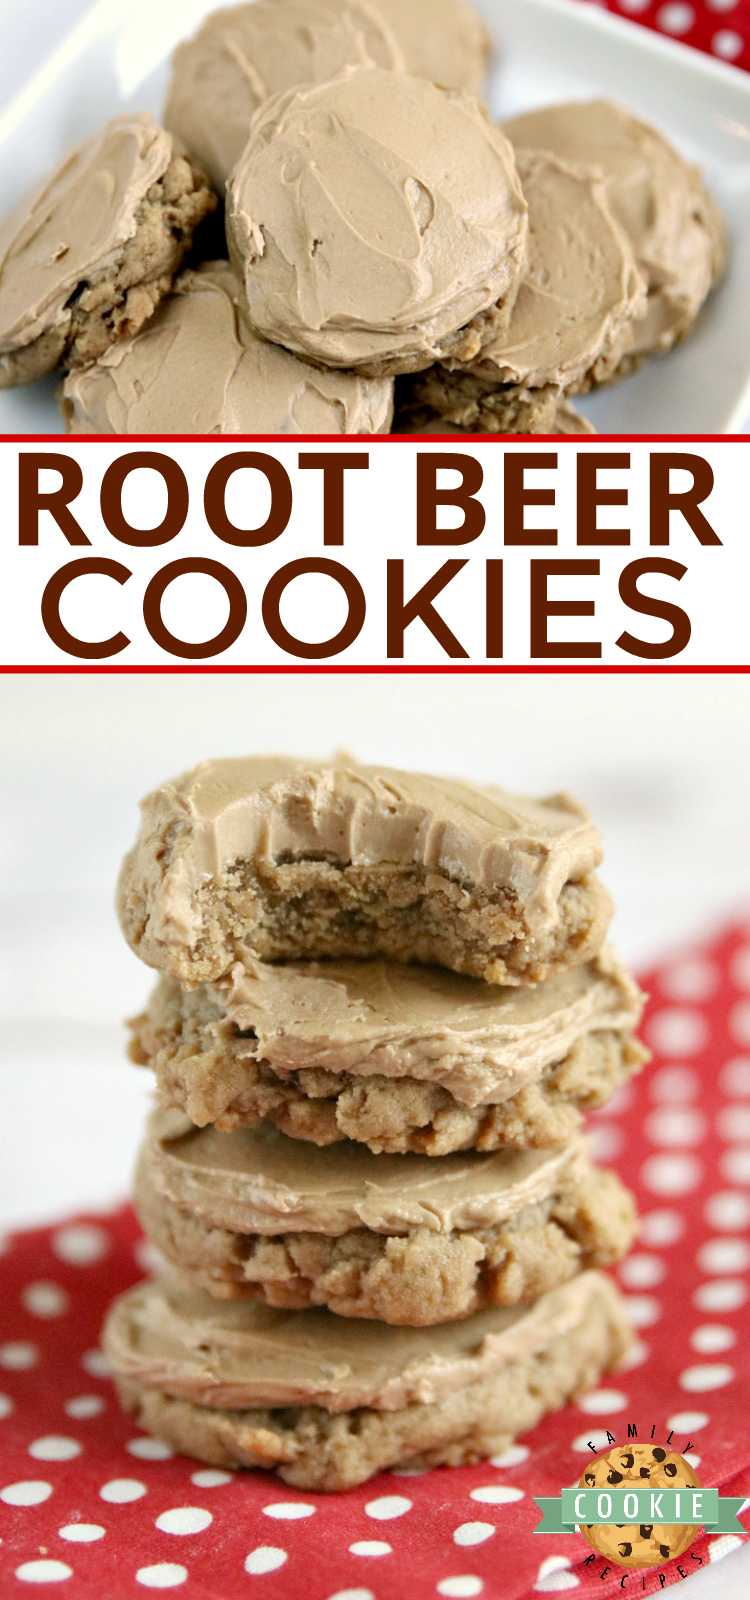 Root Beer Cookies are soft and delicious with root beer extract in the cookies and the buttercream frosting on top. via @familycookierecipes